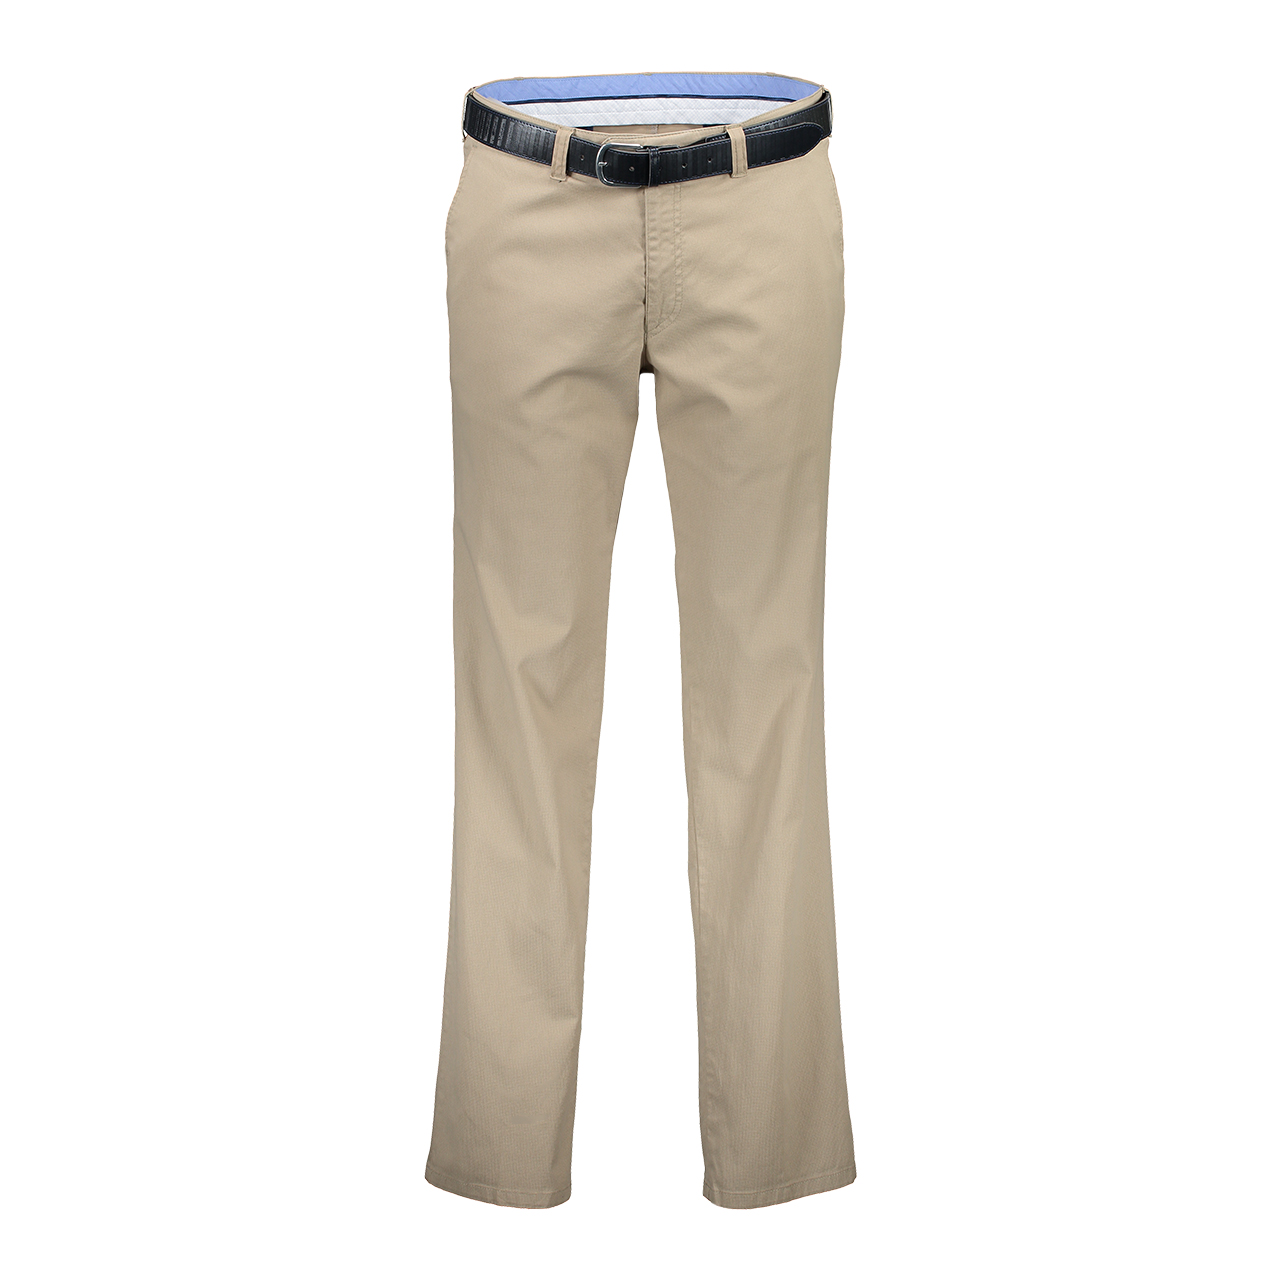 Bartlett & Walker Chino